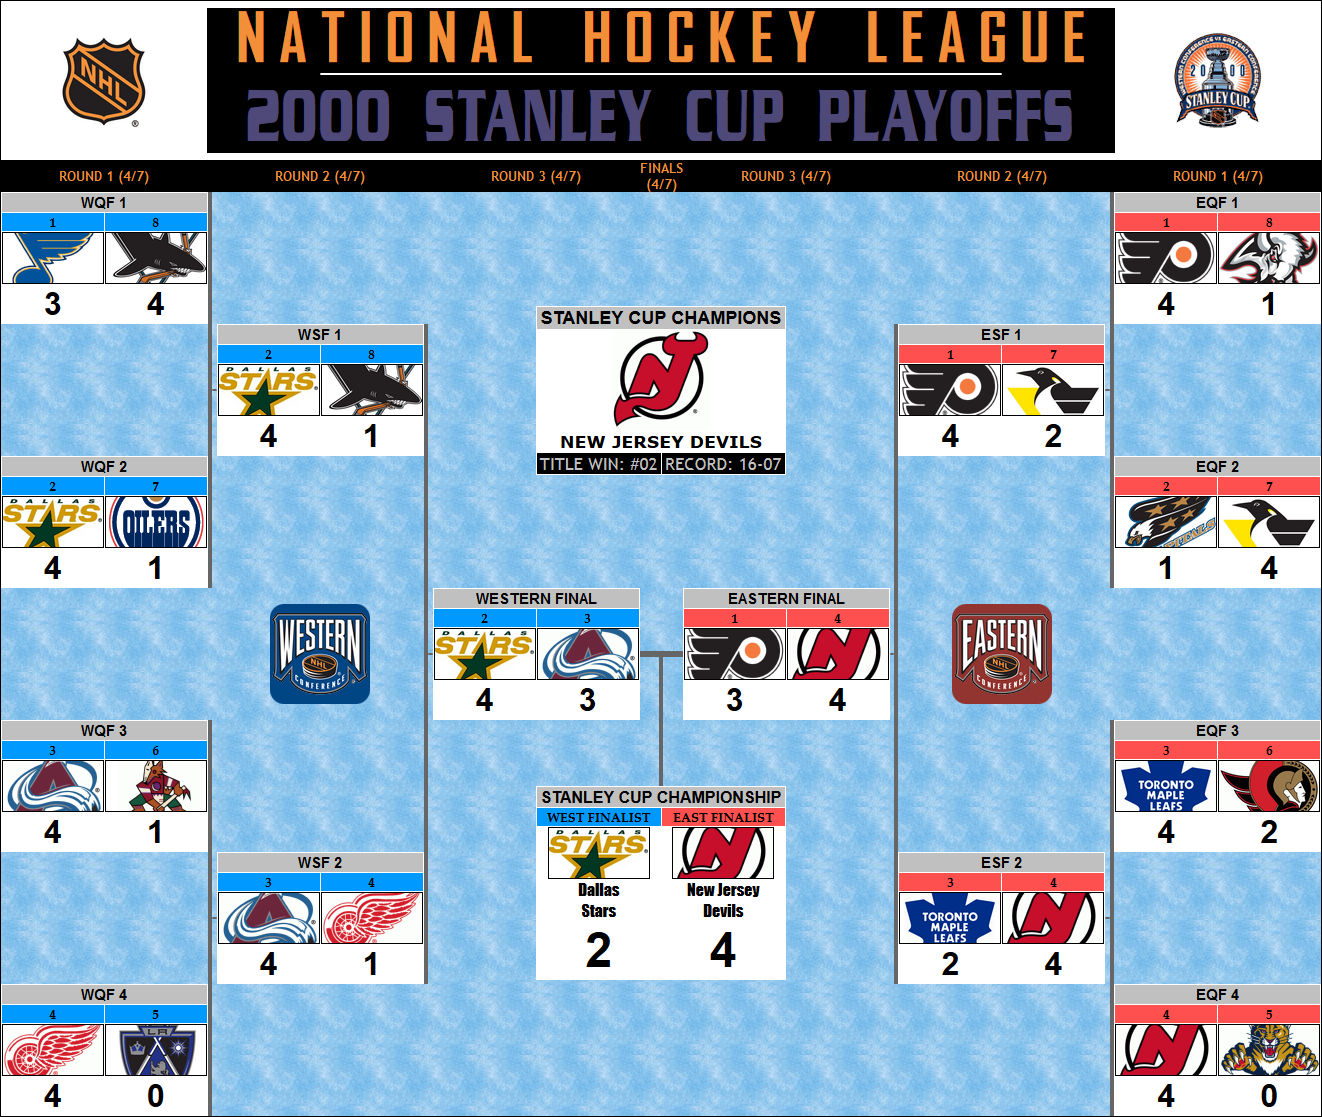 2000 Stanley Cup Playoff Bracket New Jersey Devils Championship Stanley Cup Playoffs Dallas Stars Stanley Cup Champions